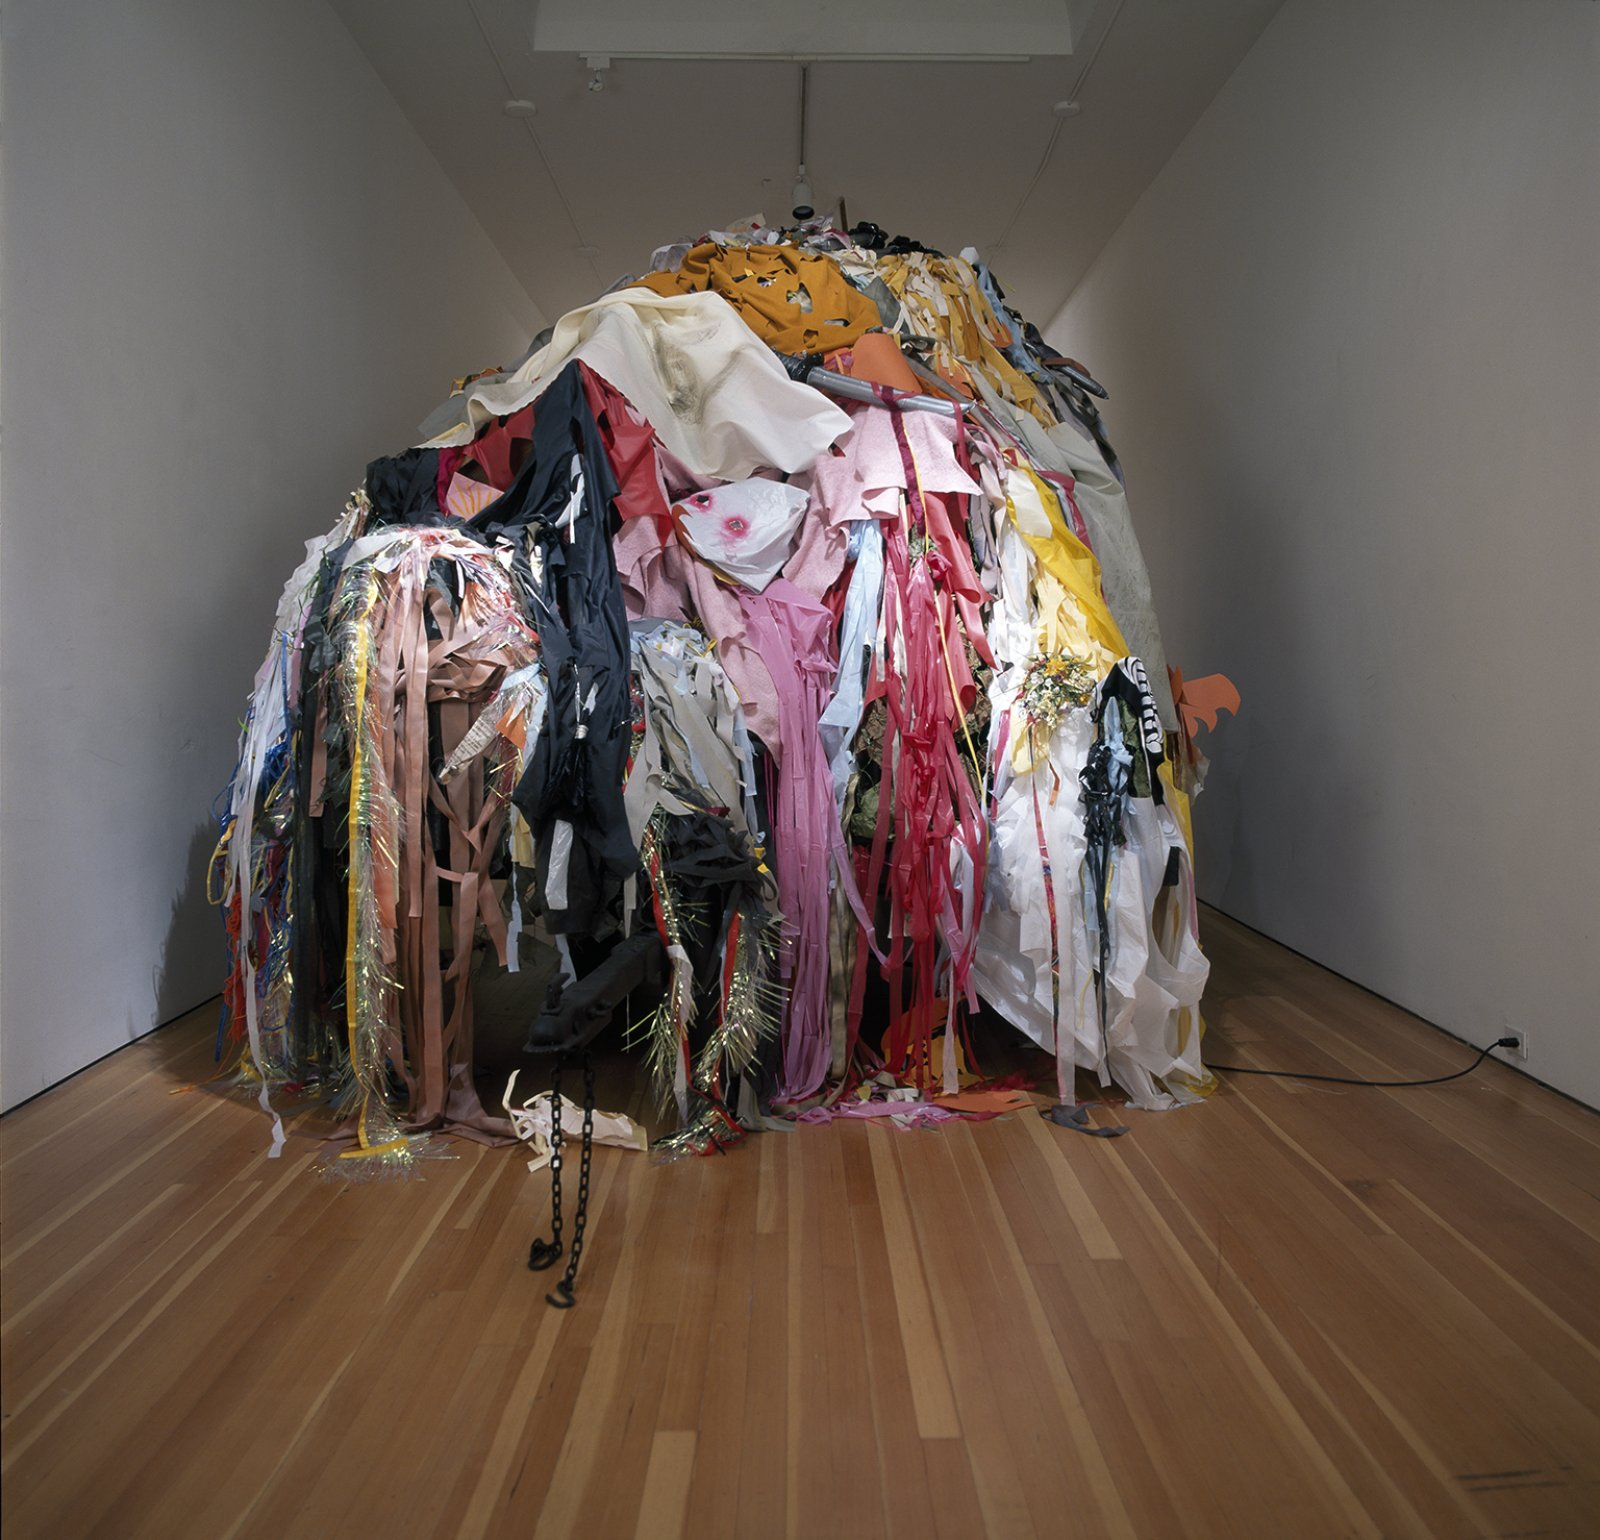 Geoffrey Farmer, Every surface in someway decorated, altered, or changed forever (except the float), 2004, mixed media, dimensions variable